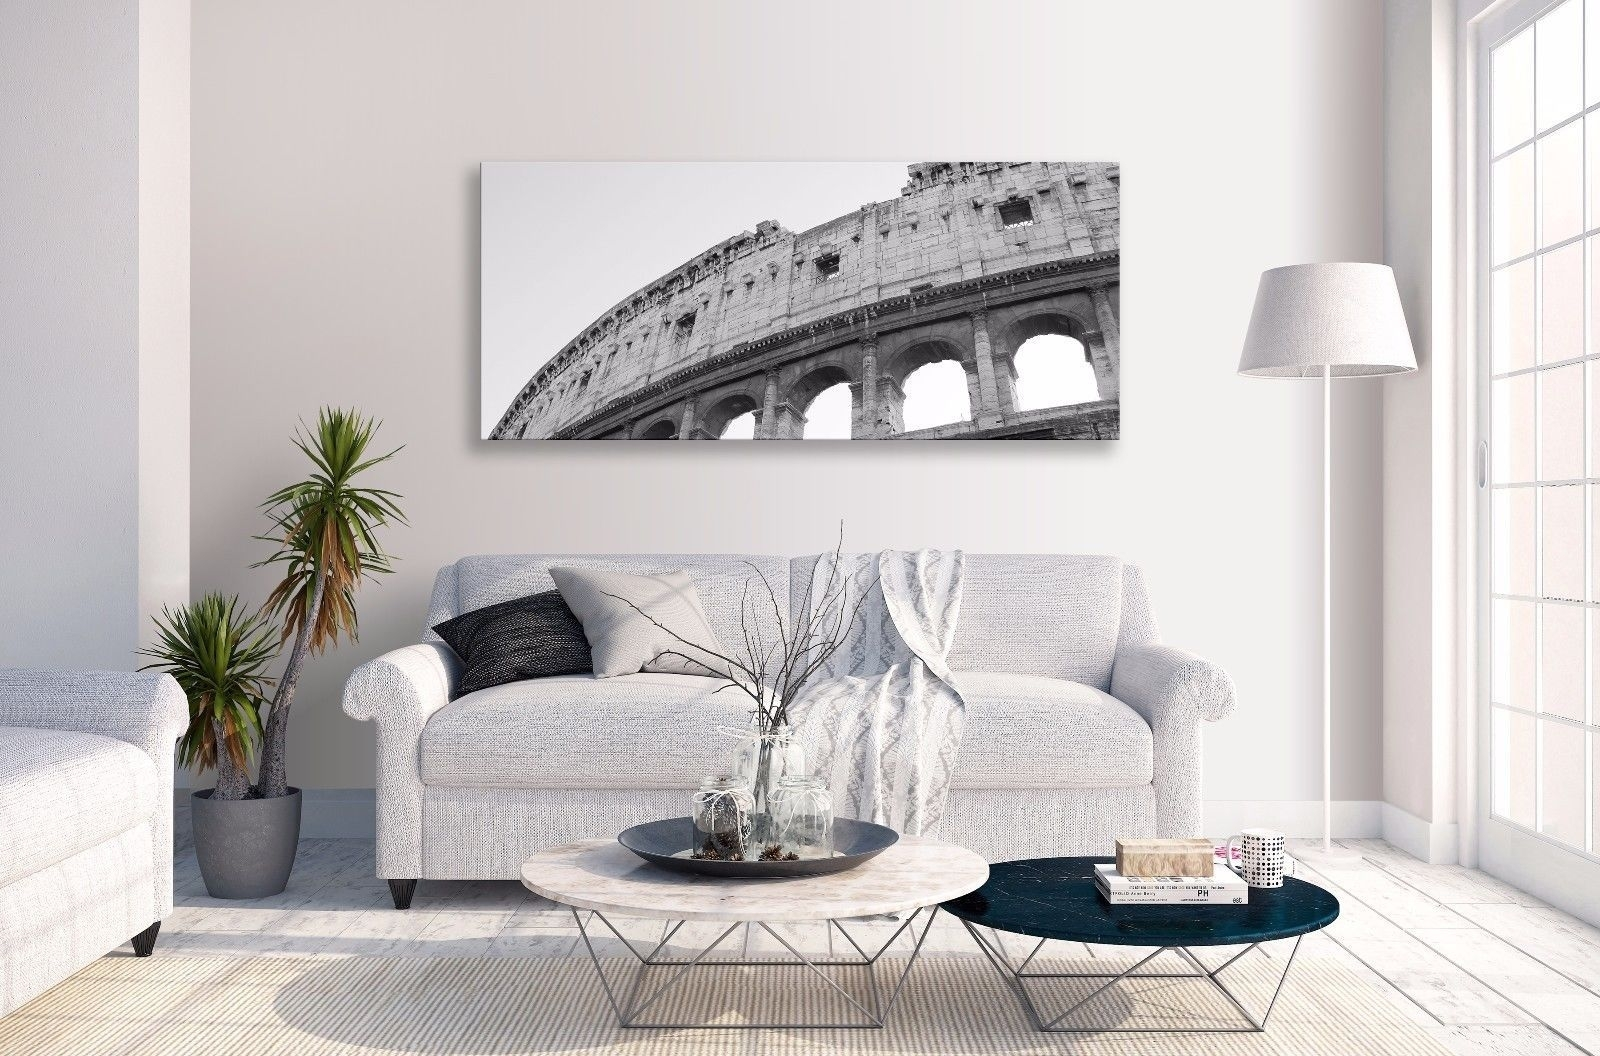 Colosseum Rome Abstract Architecture Grey Panorama Canvas Wall Art In 2018 Canvas Wall Art Of Rome (View 7 of 15)